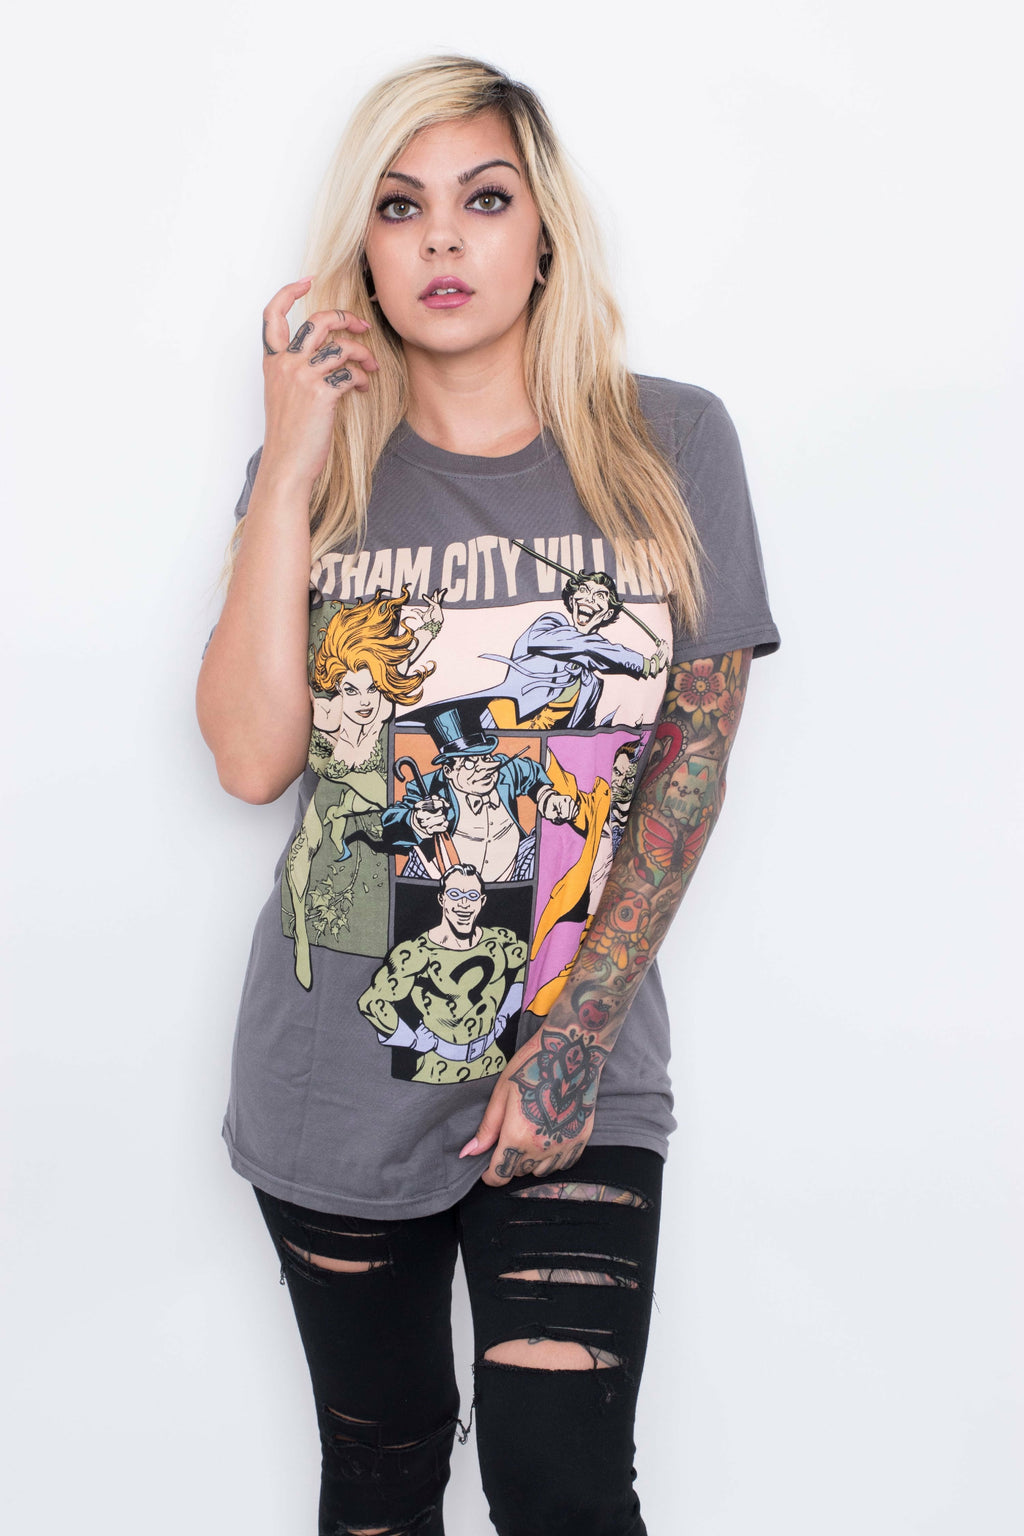 Gotham City Villains Unisex T-Shirt - Soft Kitty Clothing